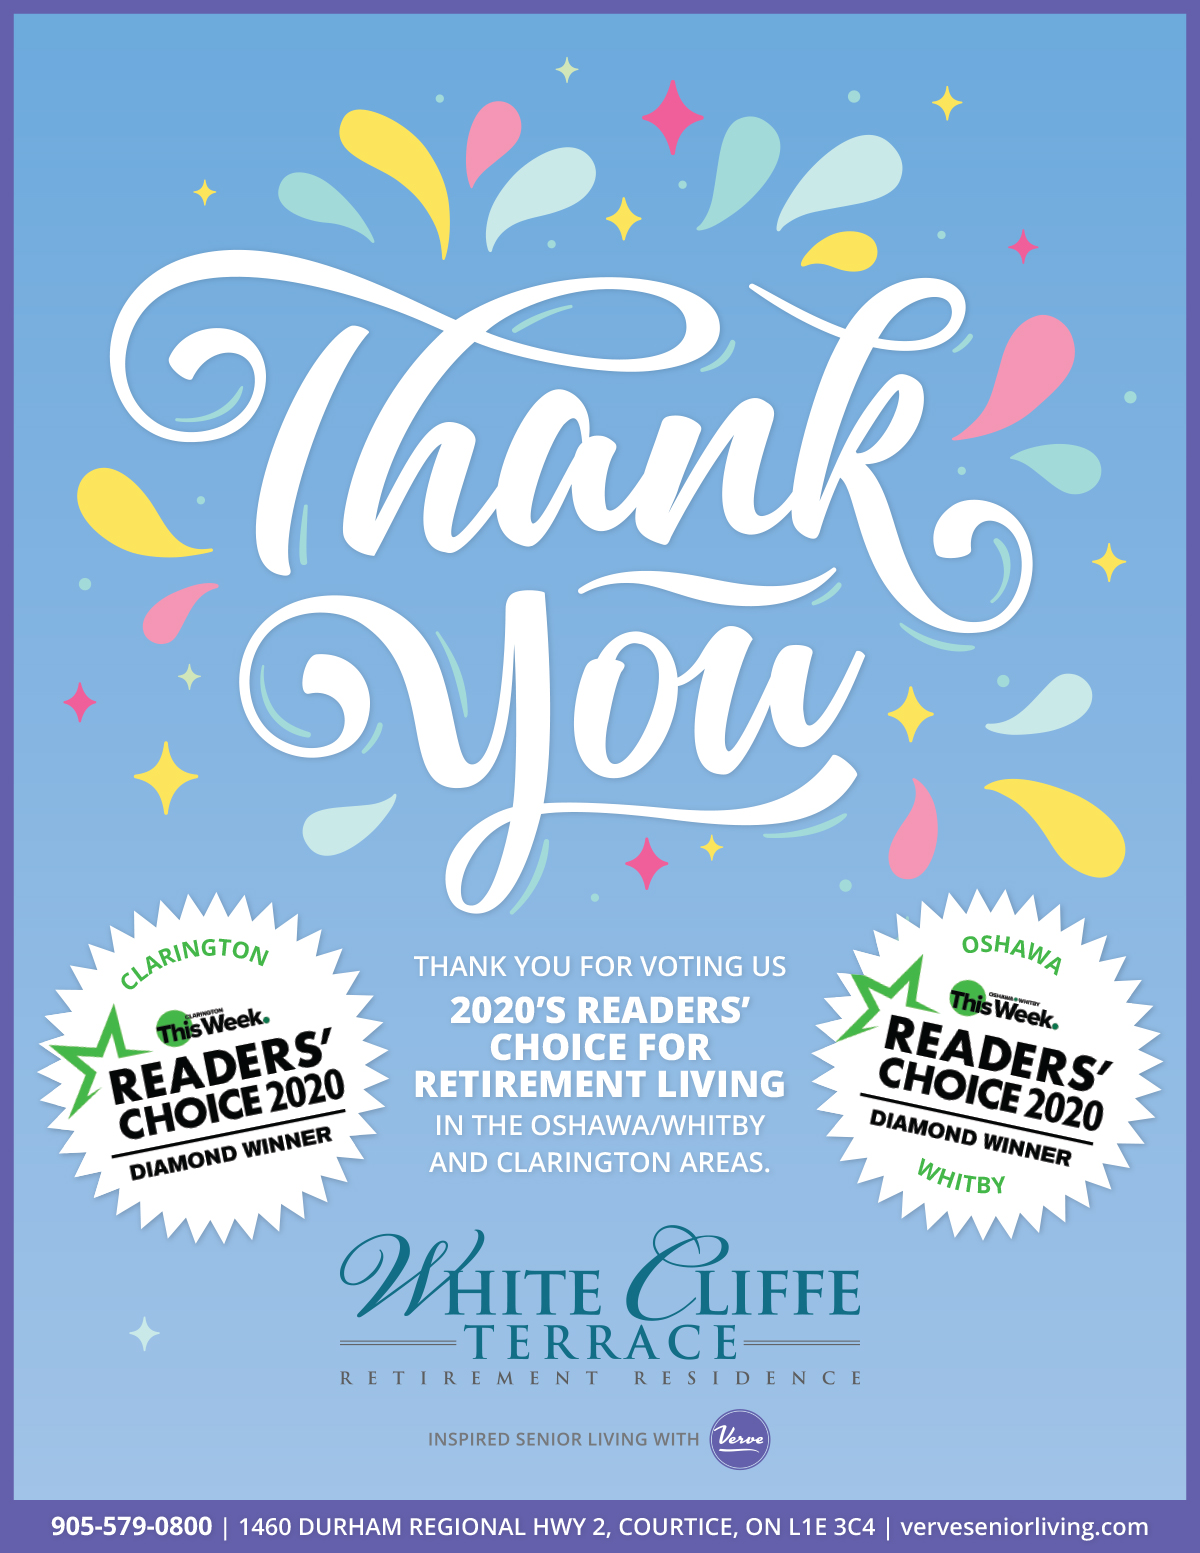 Thank you for voting us 2020 Readers' Choice for Retirement Living in the Oshawa, Whiteby and Clarington areas!